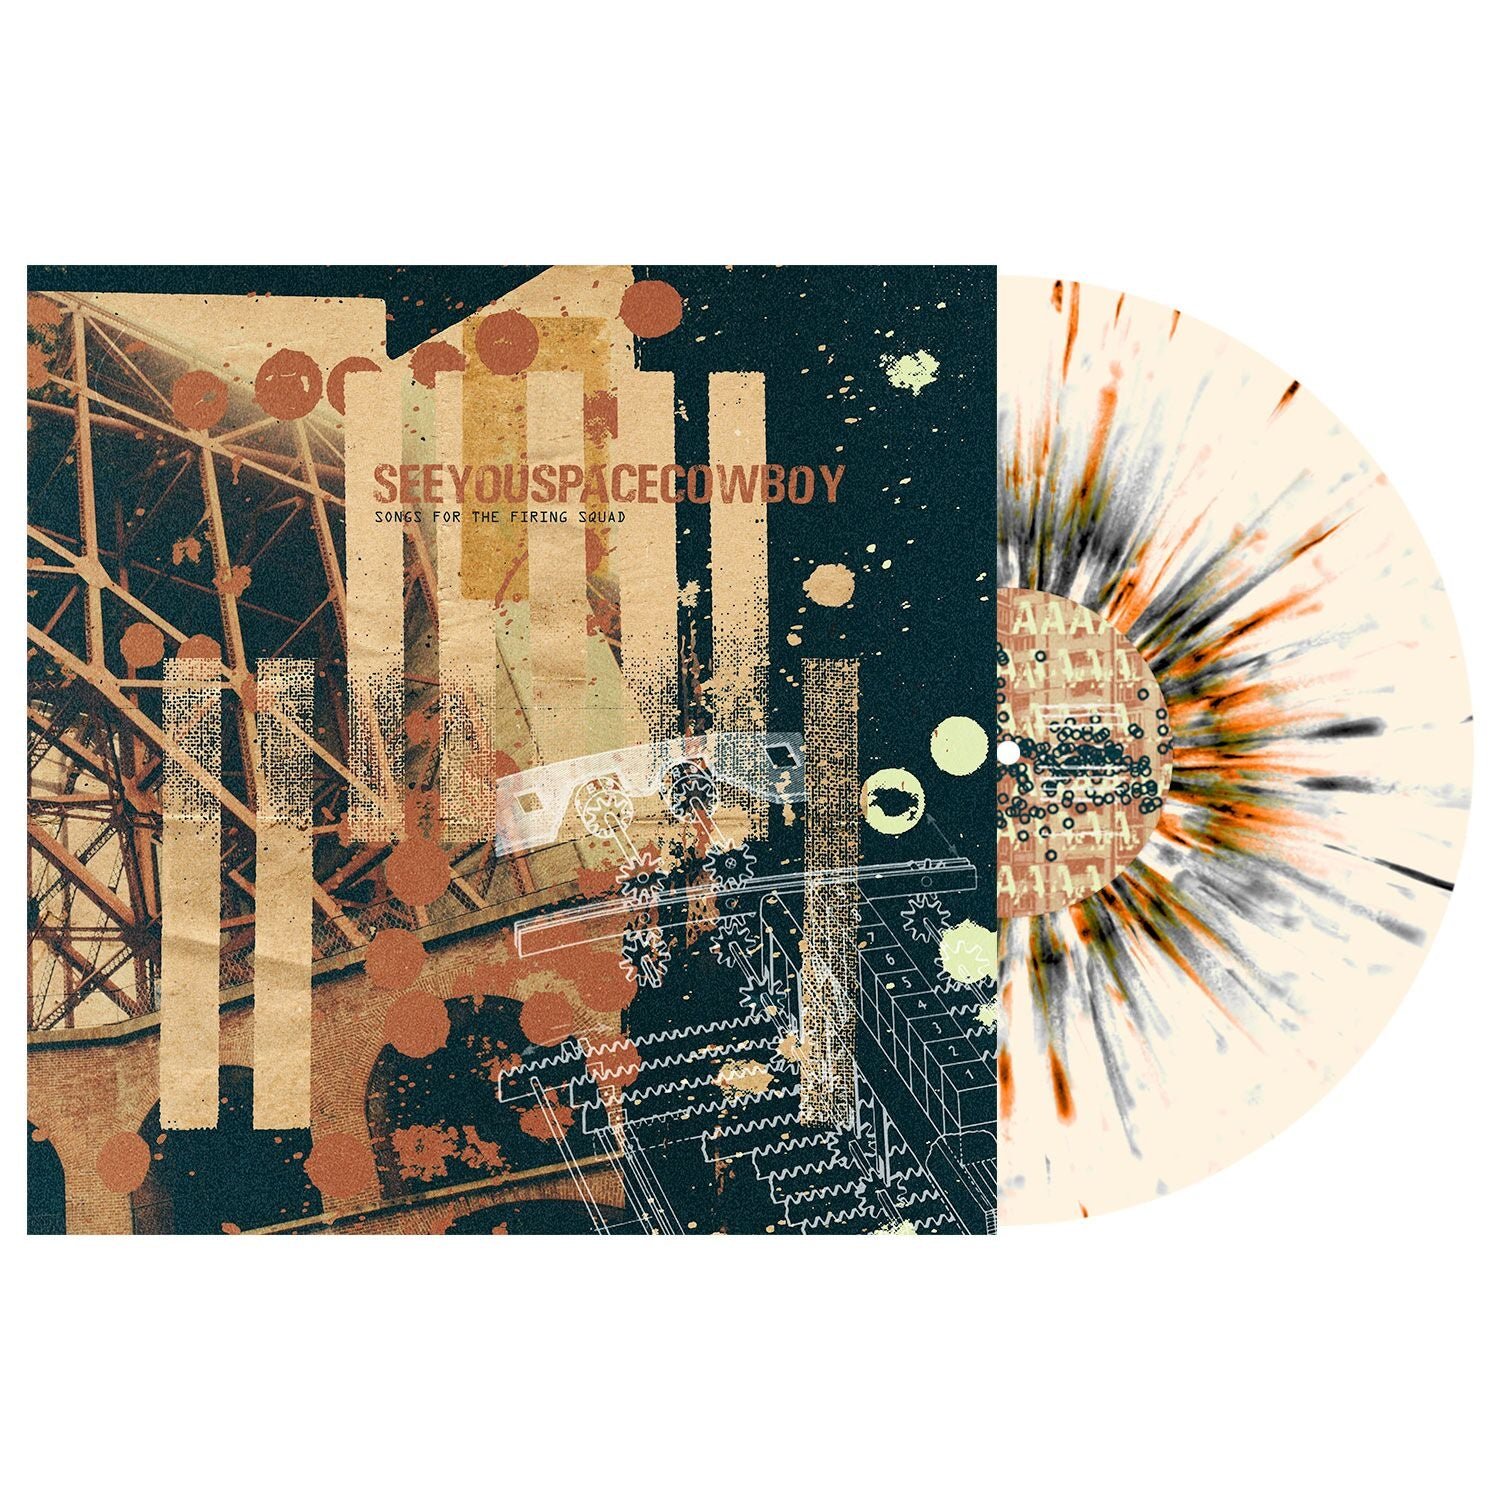 SeeYouSpaceCowboy 'Songs for the Firing Squad' LP (Bone w/ heavy black and Halloween Orange splatter)